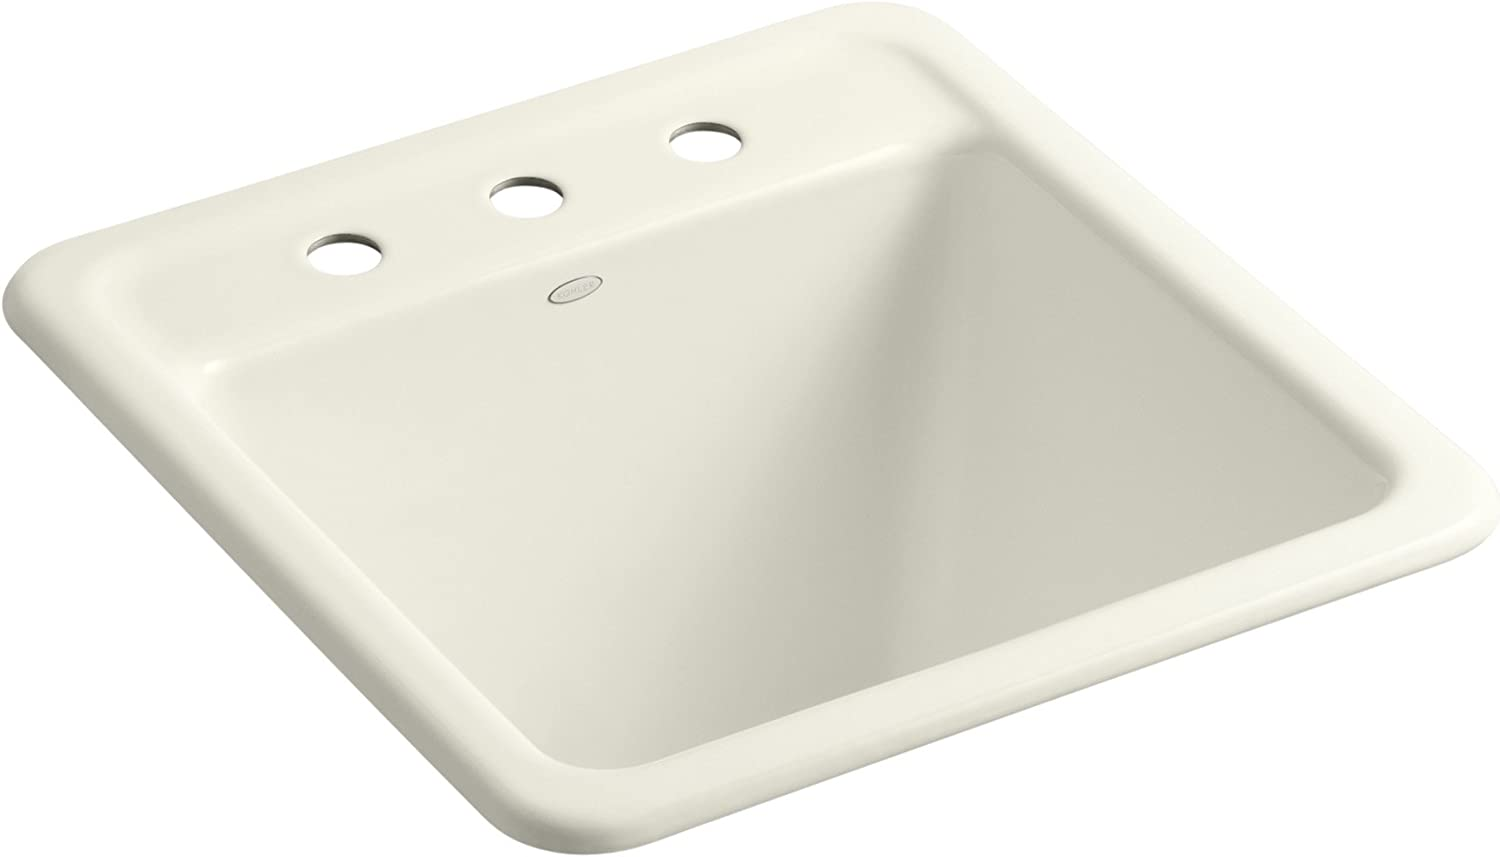 KOHLER K-19022-3-96 Park Falls Top-Mount/Undermount Utility Sink with Three Faucet Holes, Biscuit